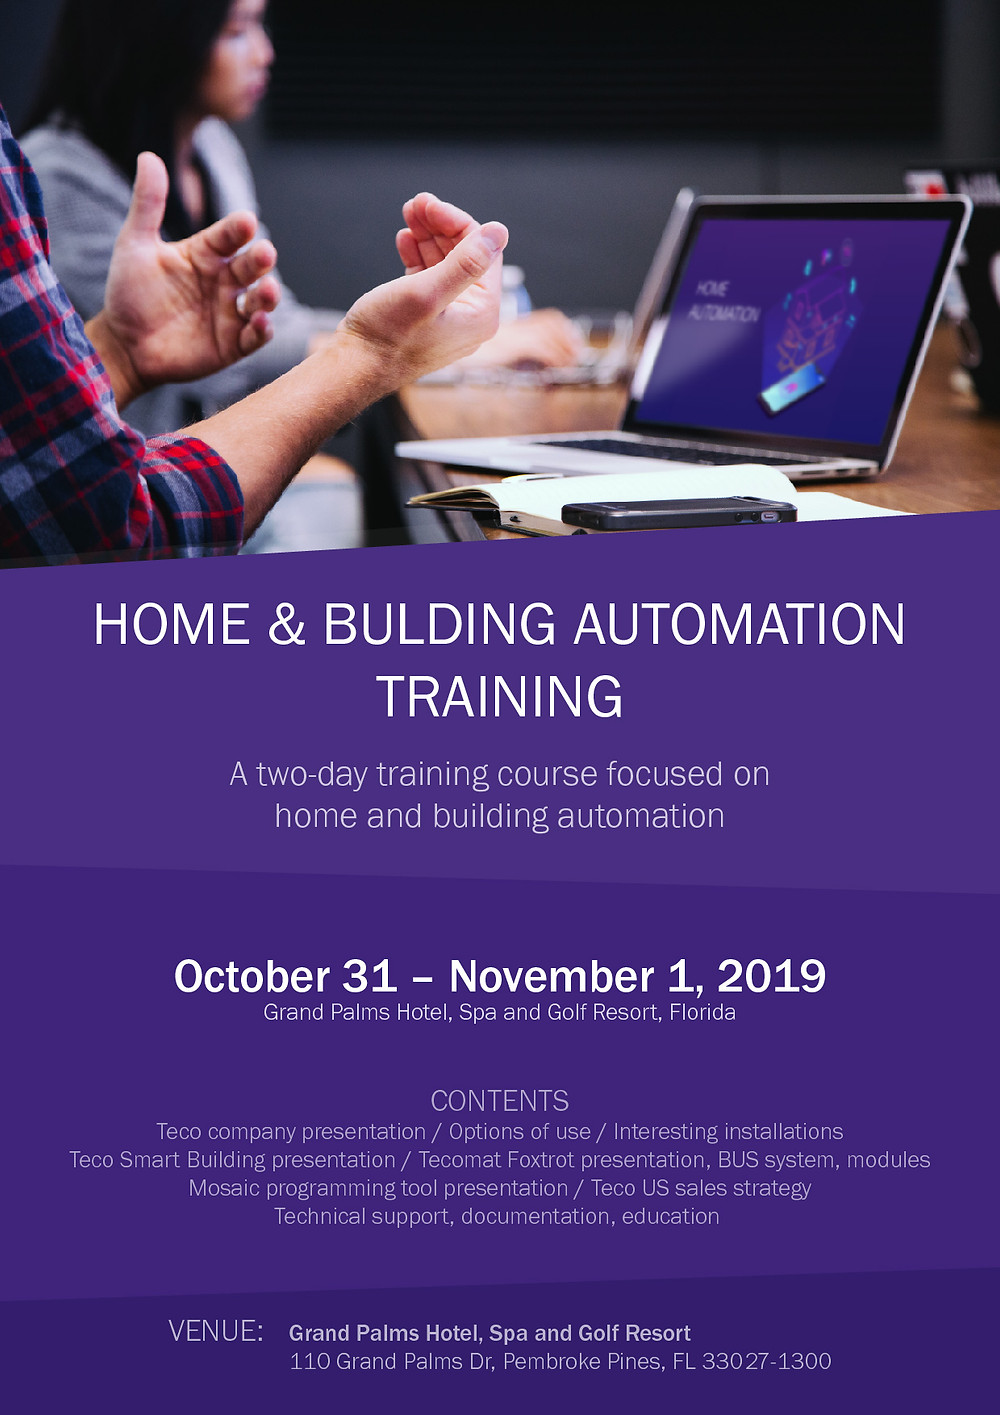 Home and building Automation training courses